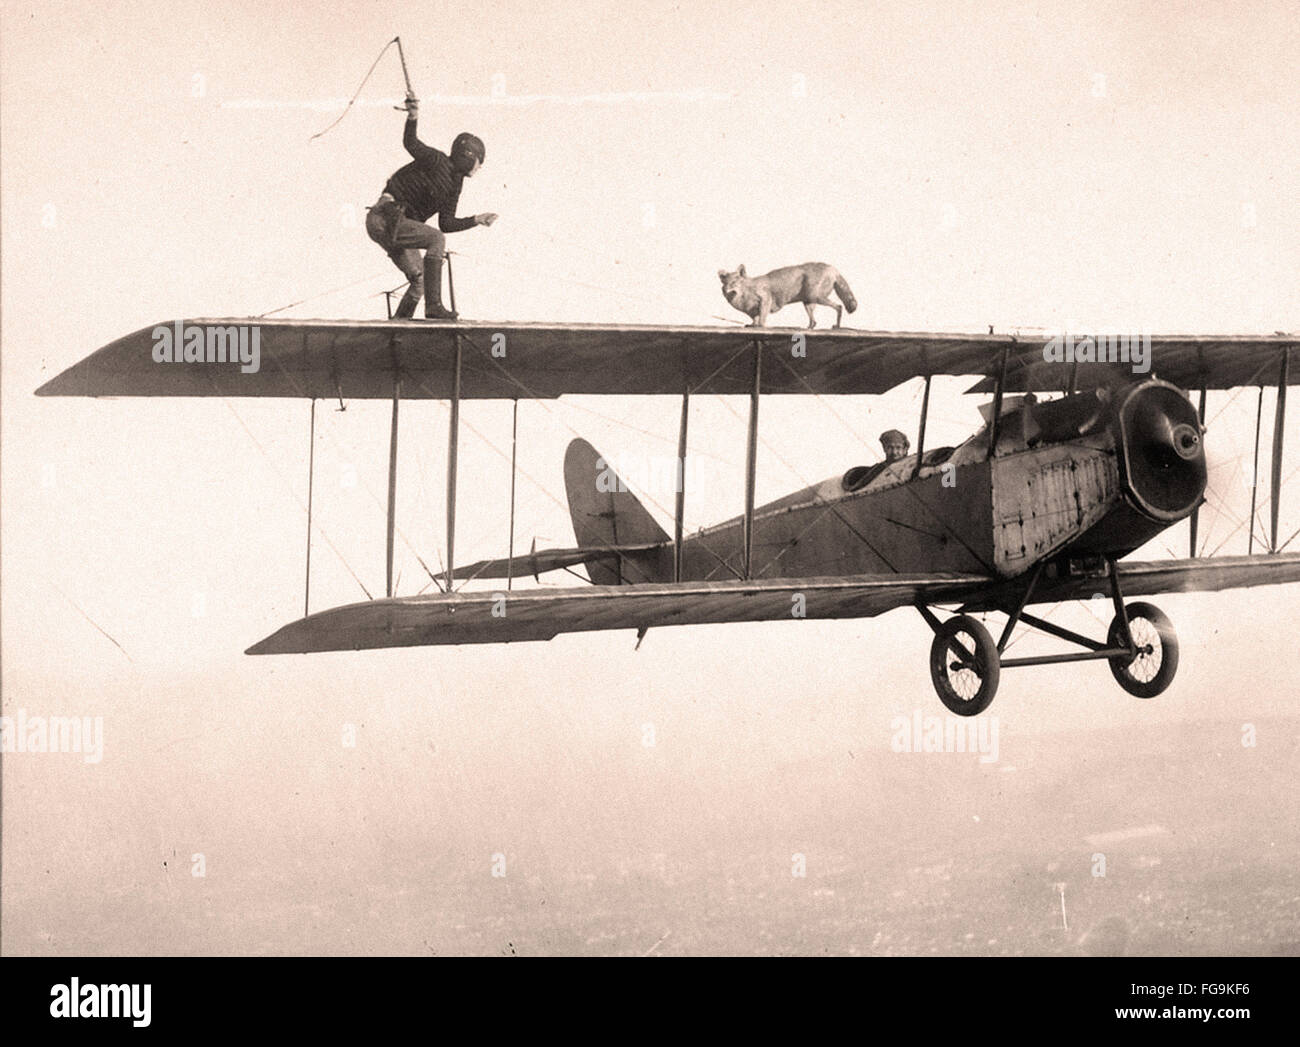 Stunt man and dog on the wings of a plane - 1920s - Stock Image